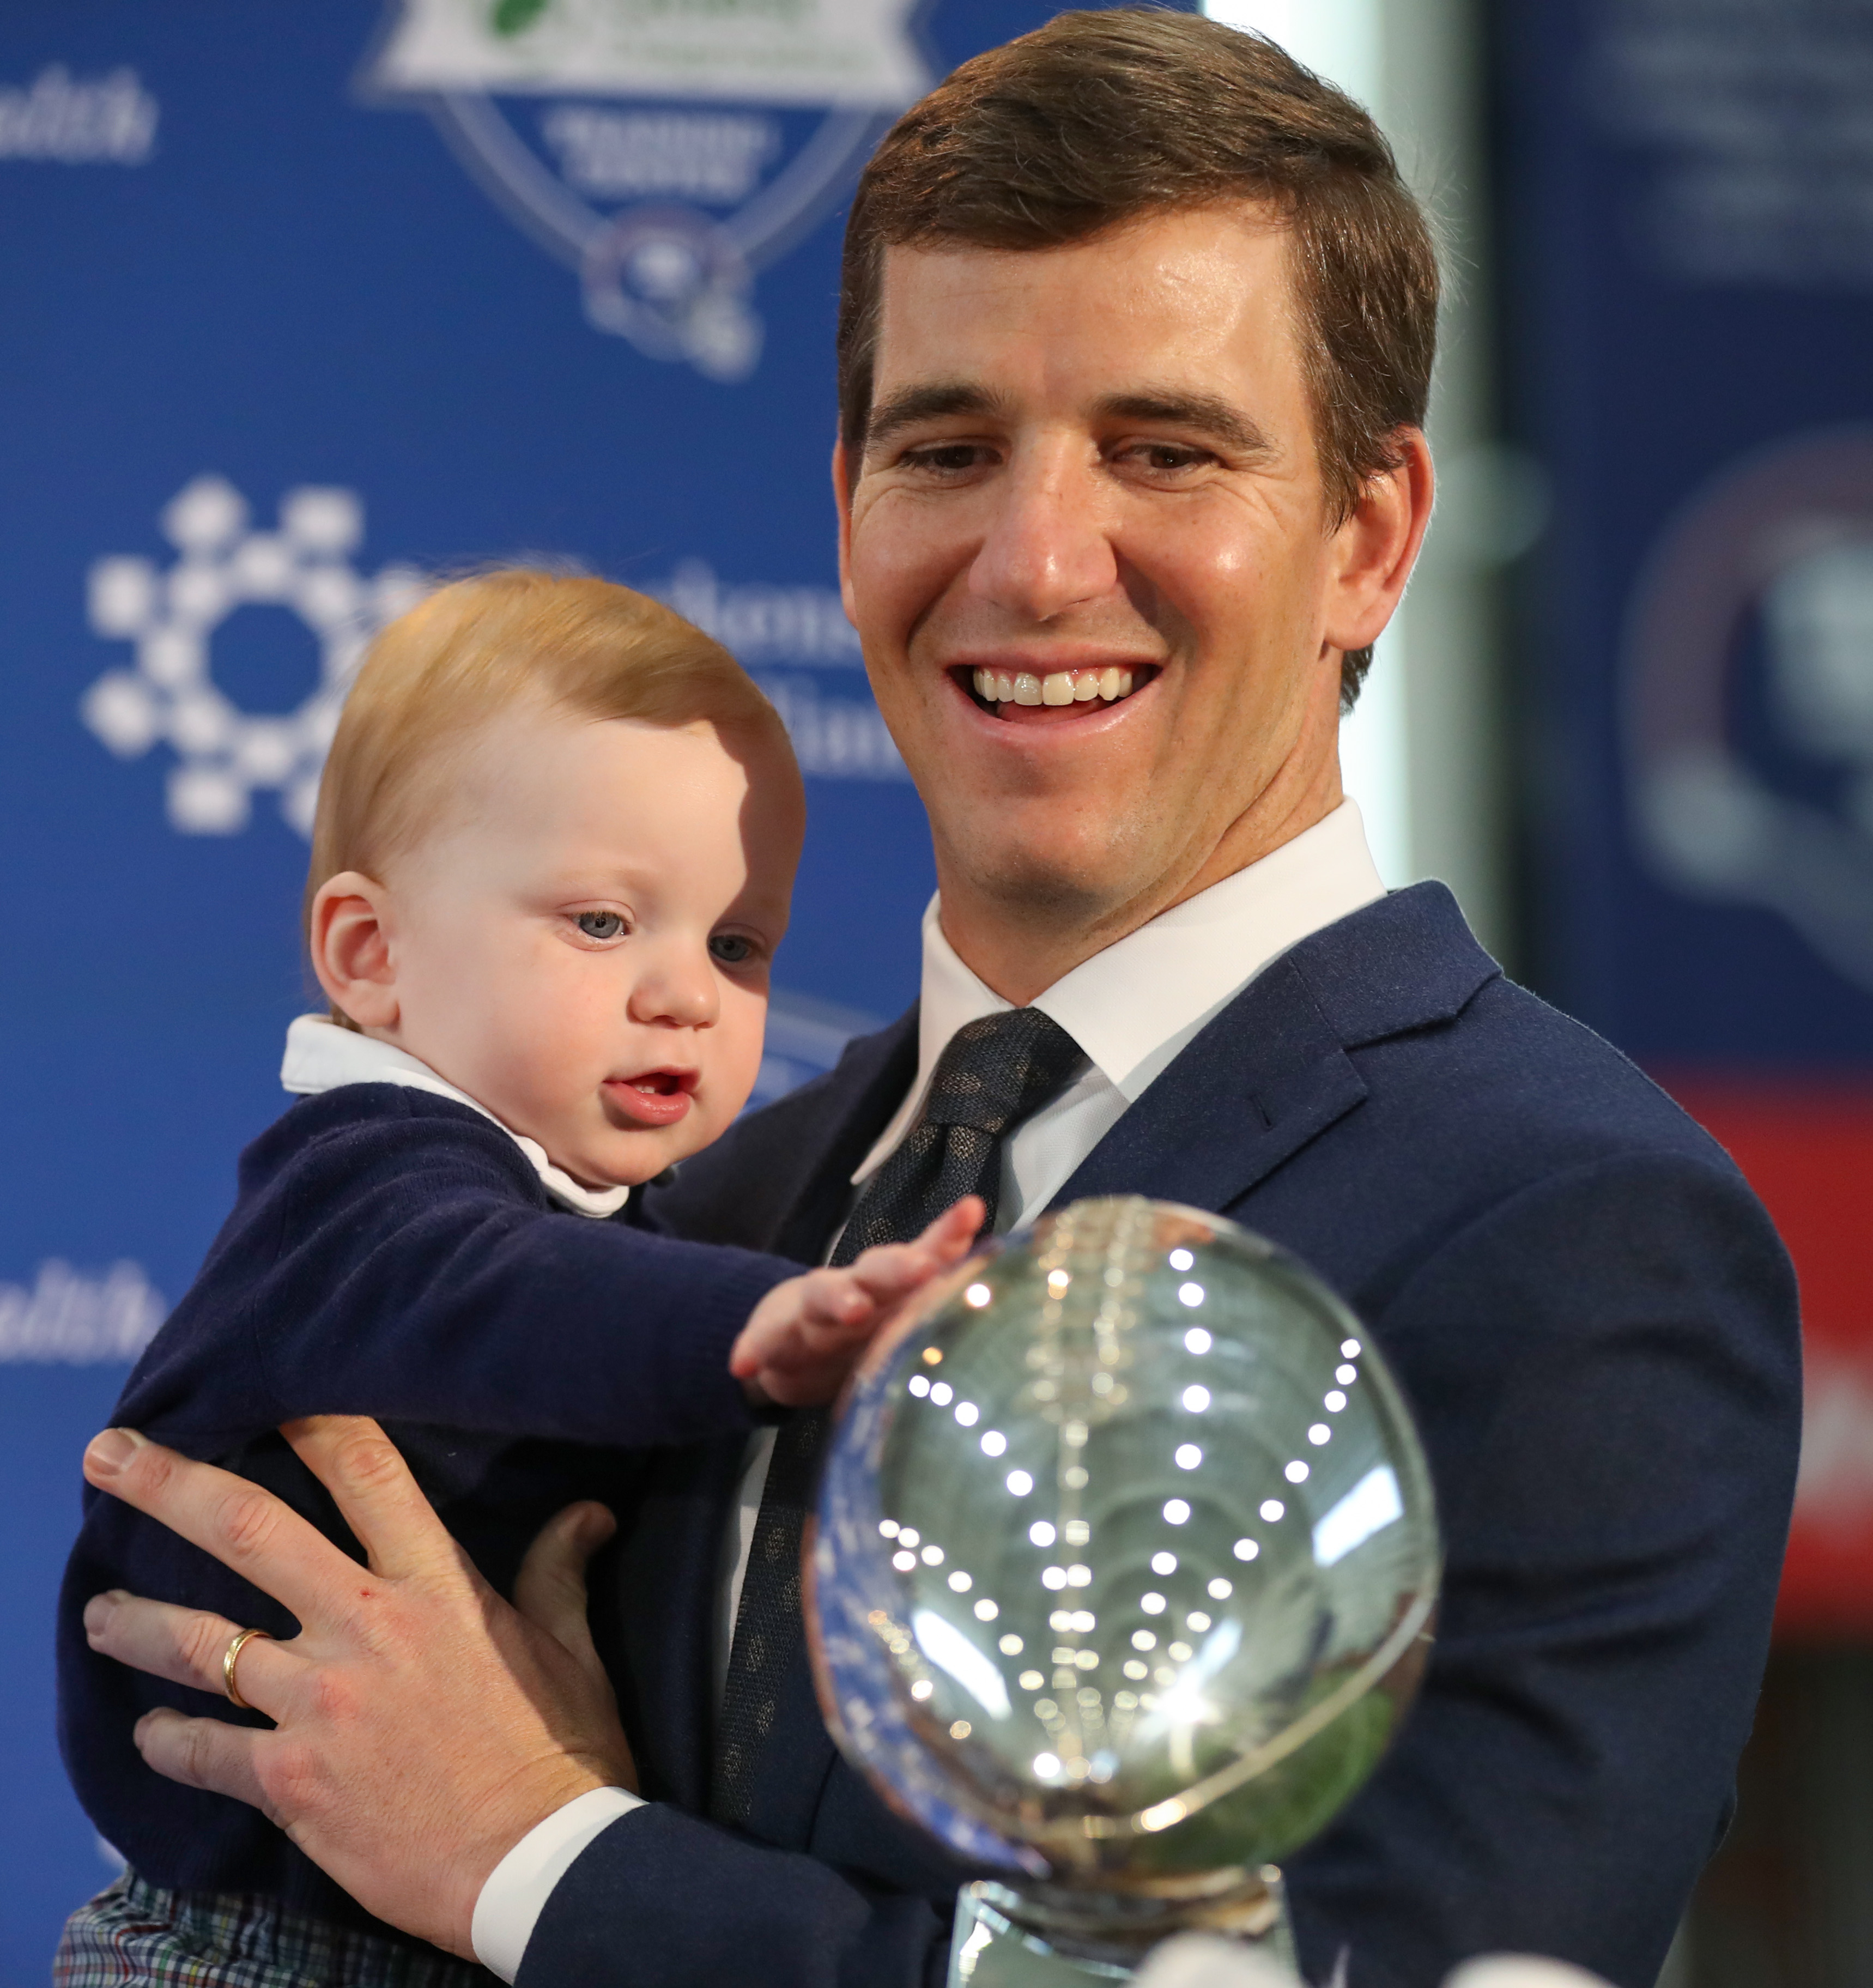 Jets legend Joe Namath: Giants' Eli Manning was best Super Bowl-winning QB to play for New York